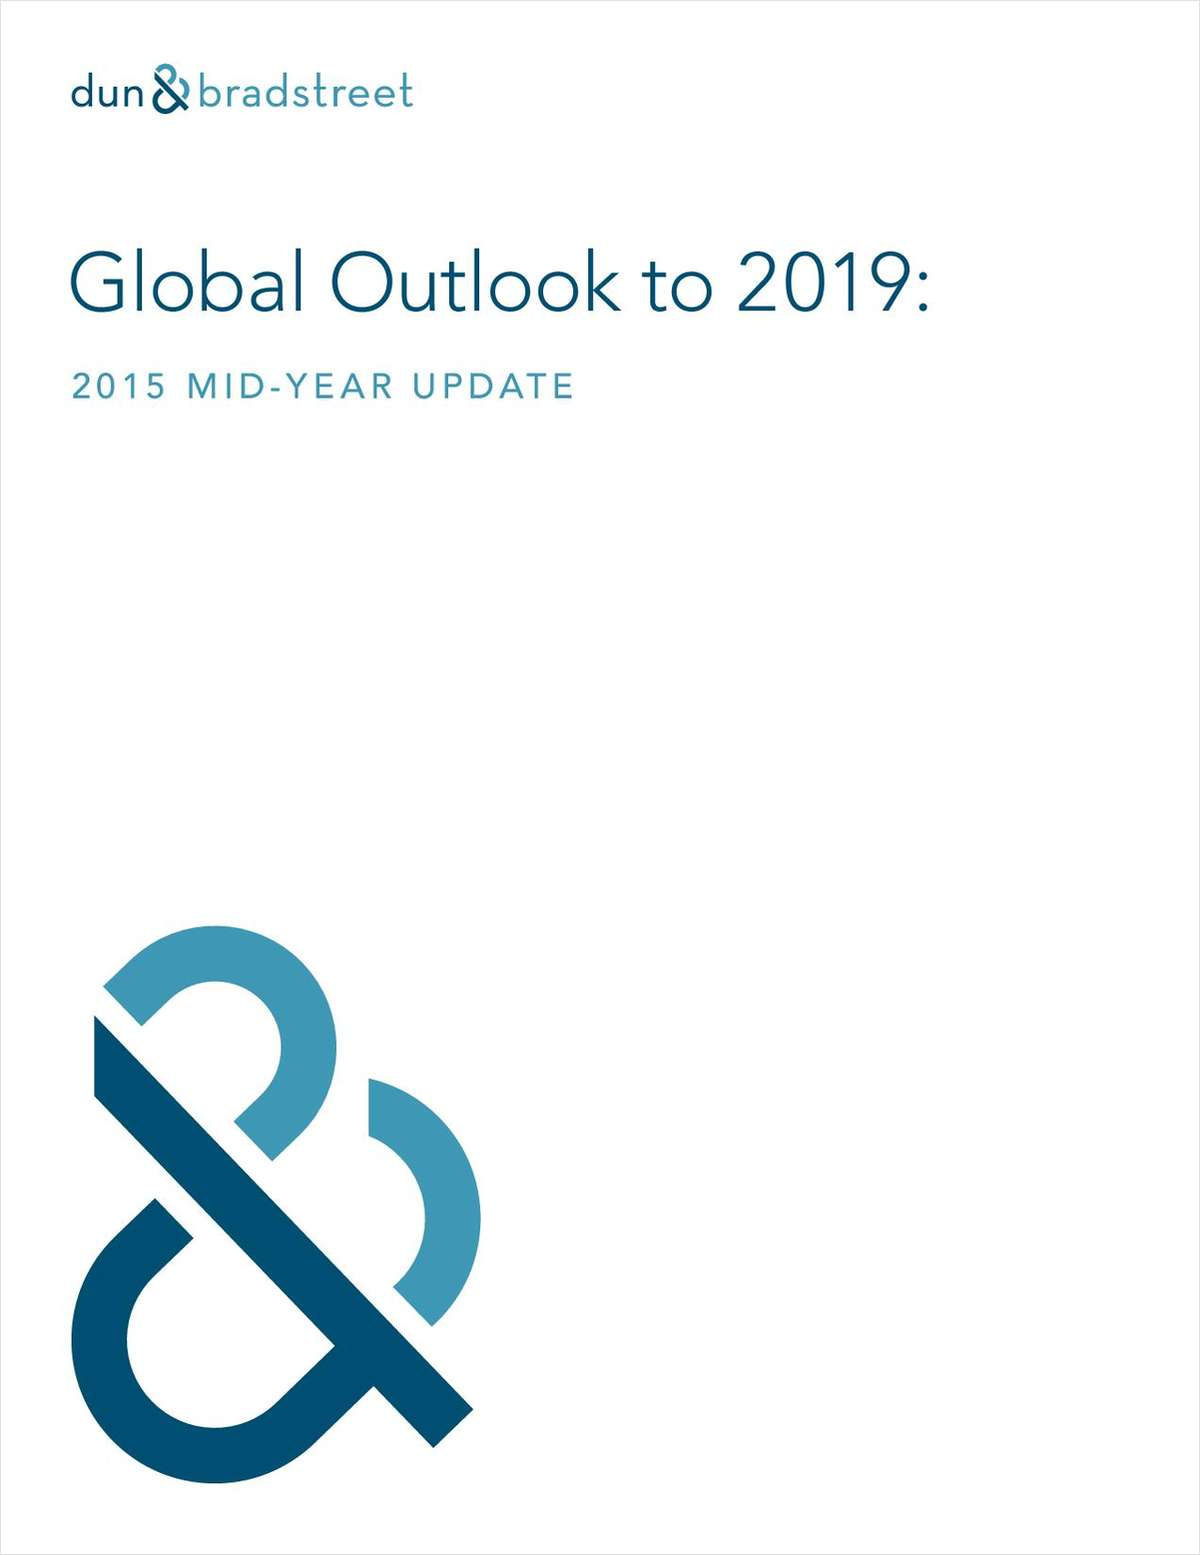 The Future of the Global Economy: A 2015-2019 Analyst View